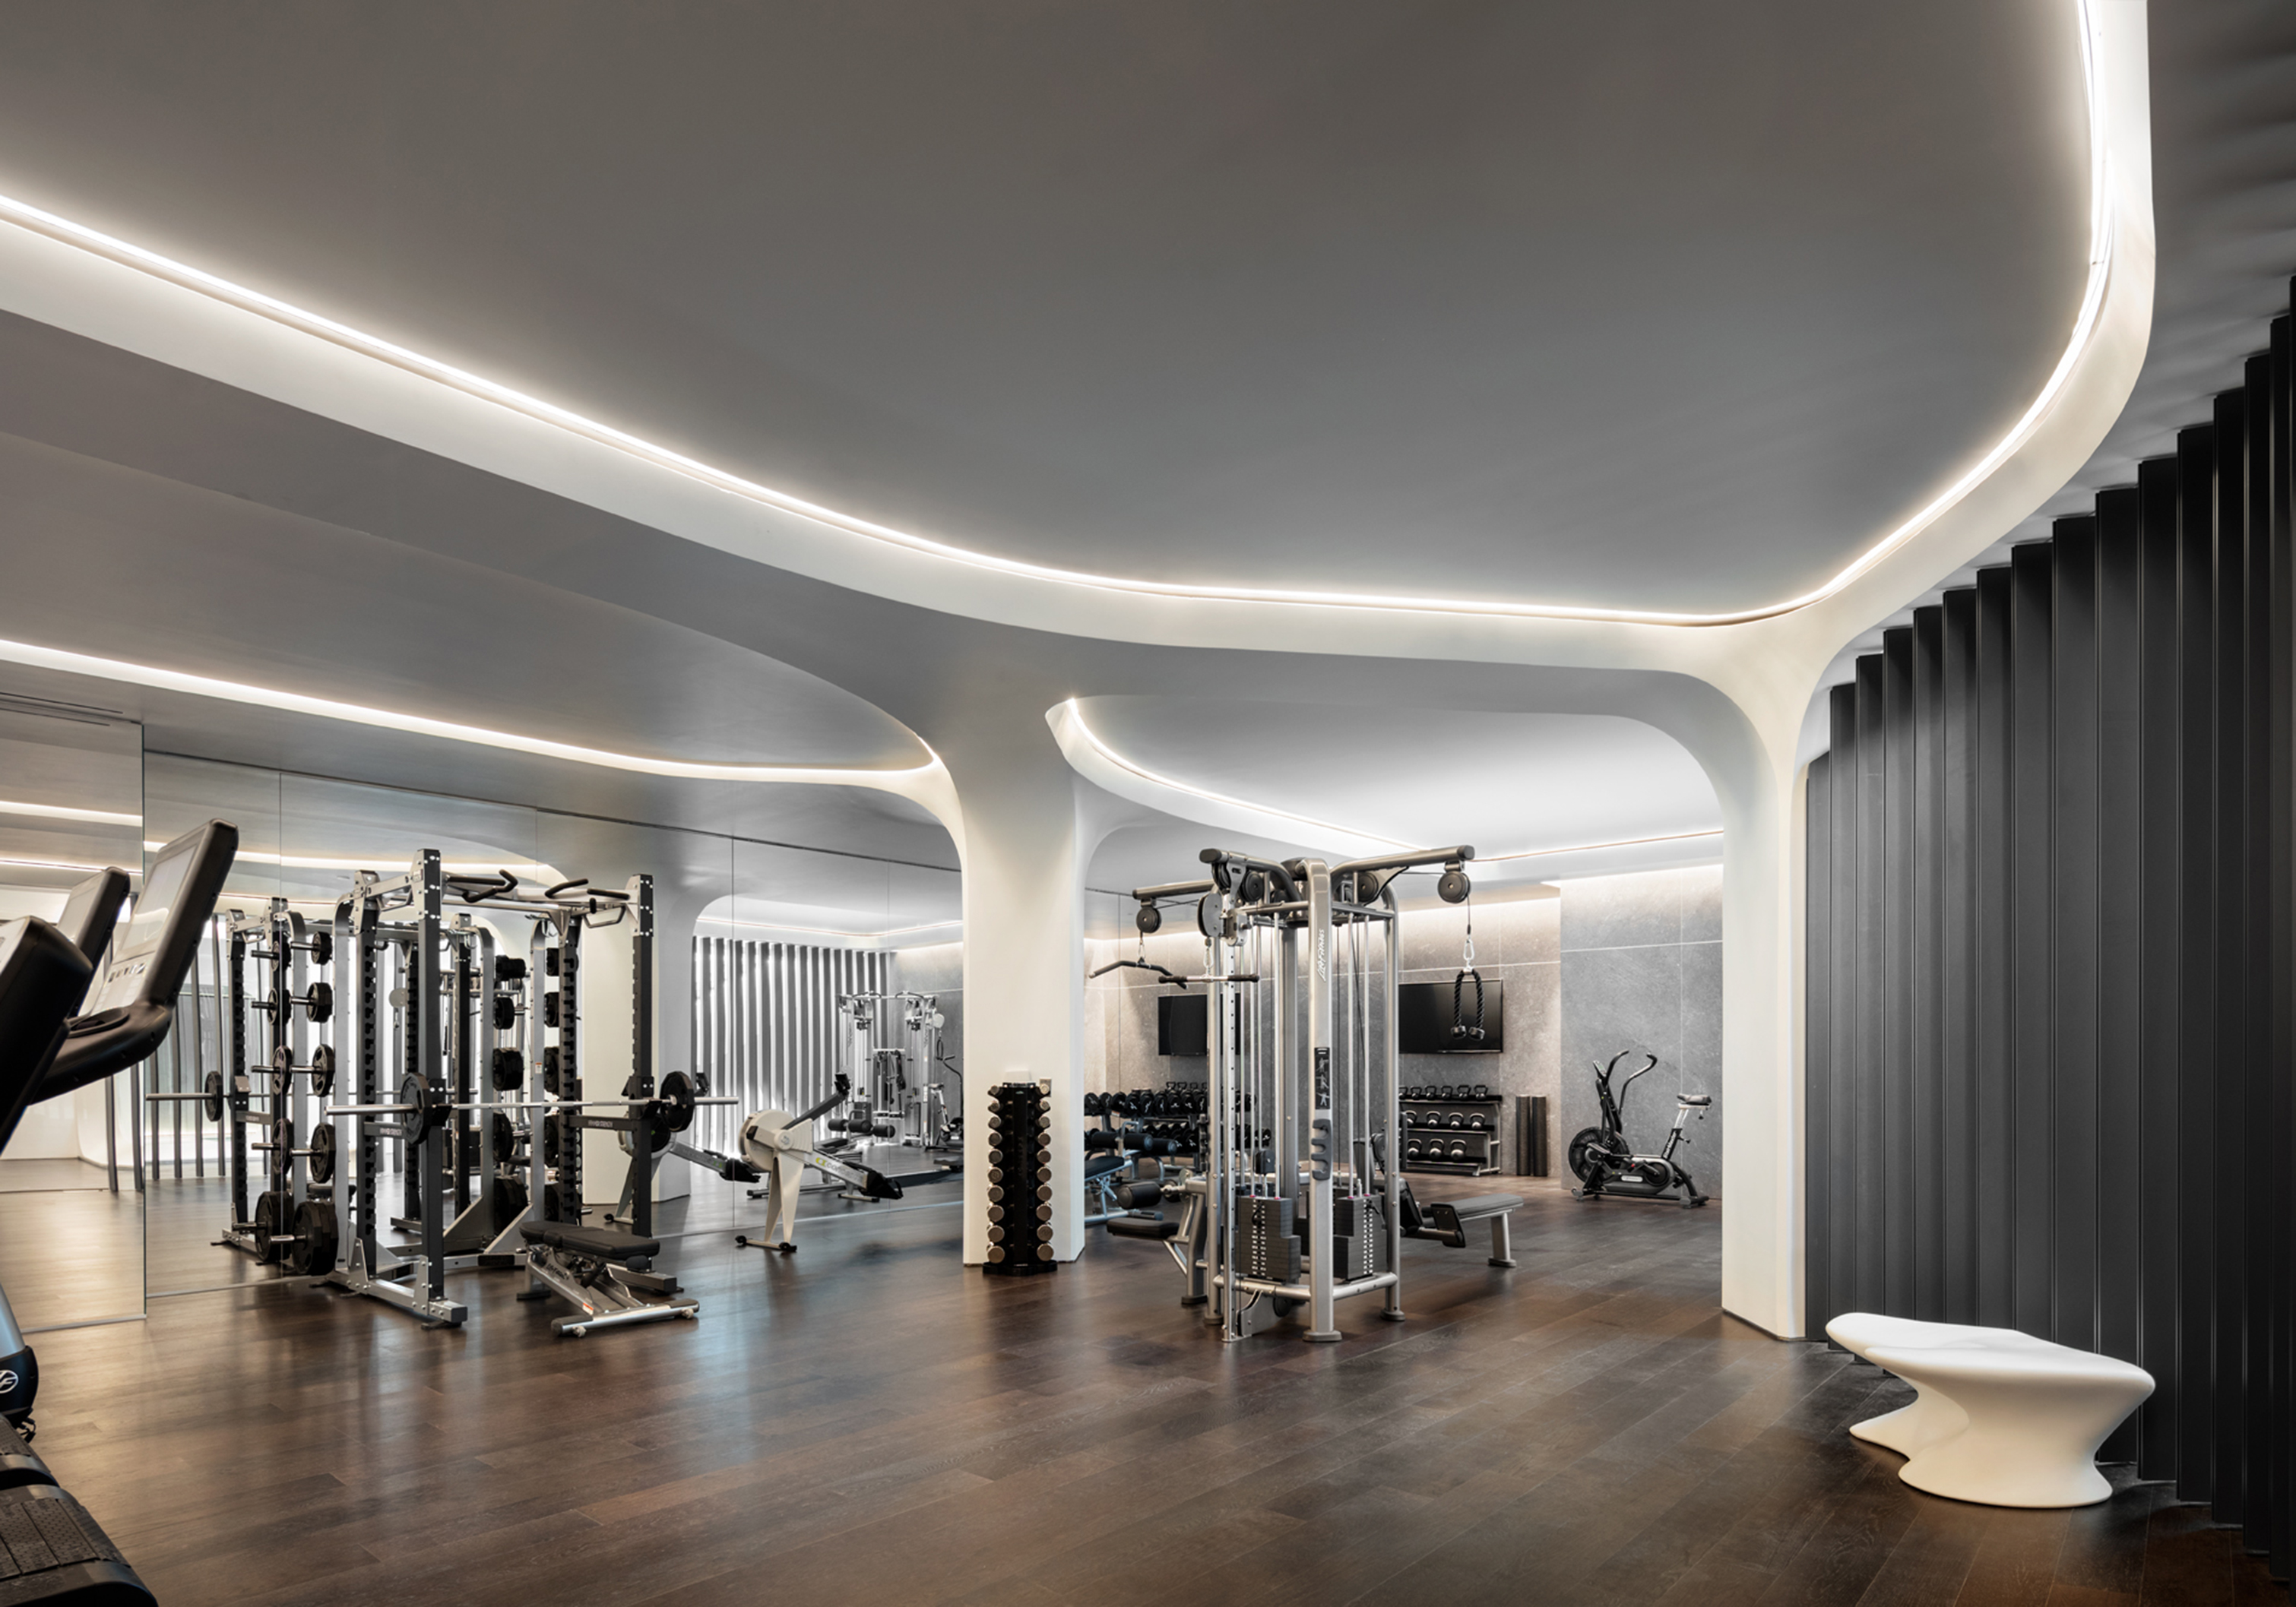 http://content.related.com/Chelsea Condos Gym